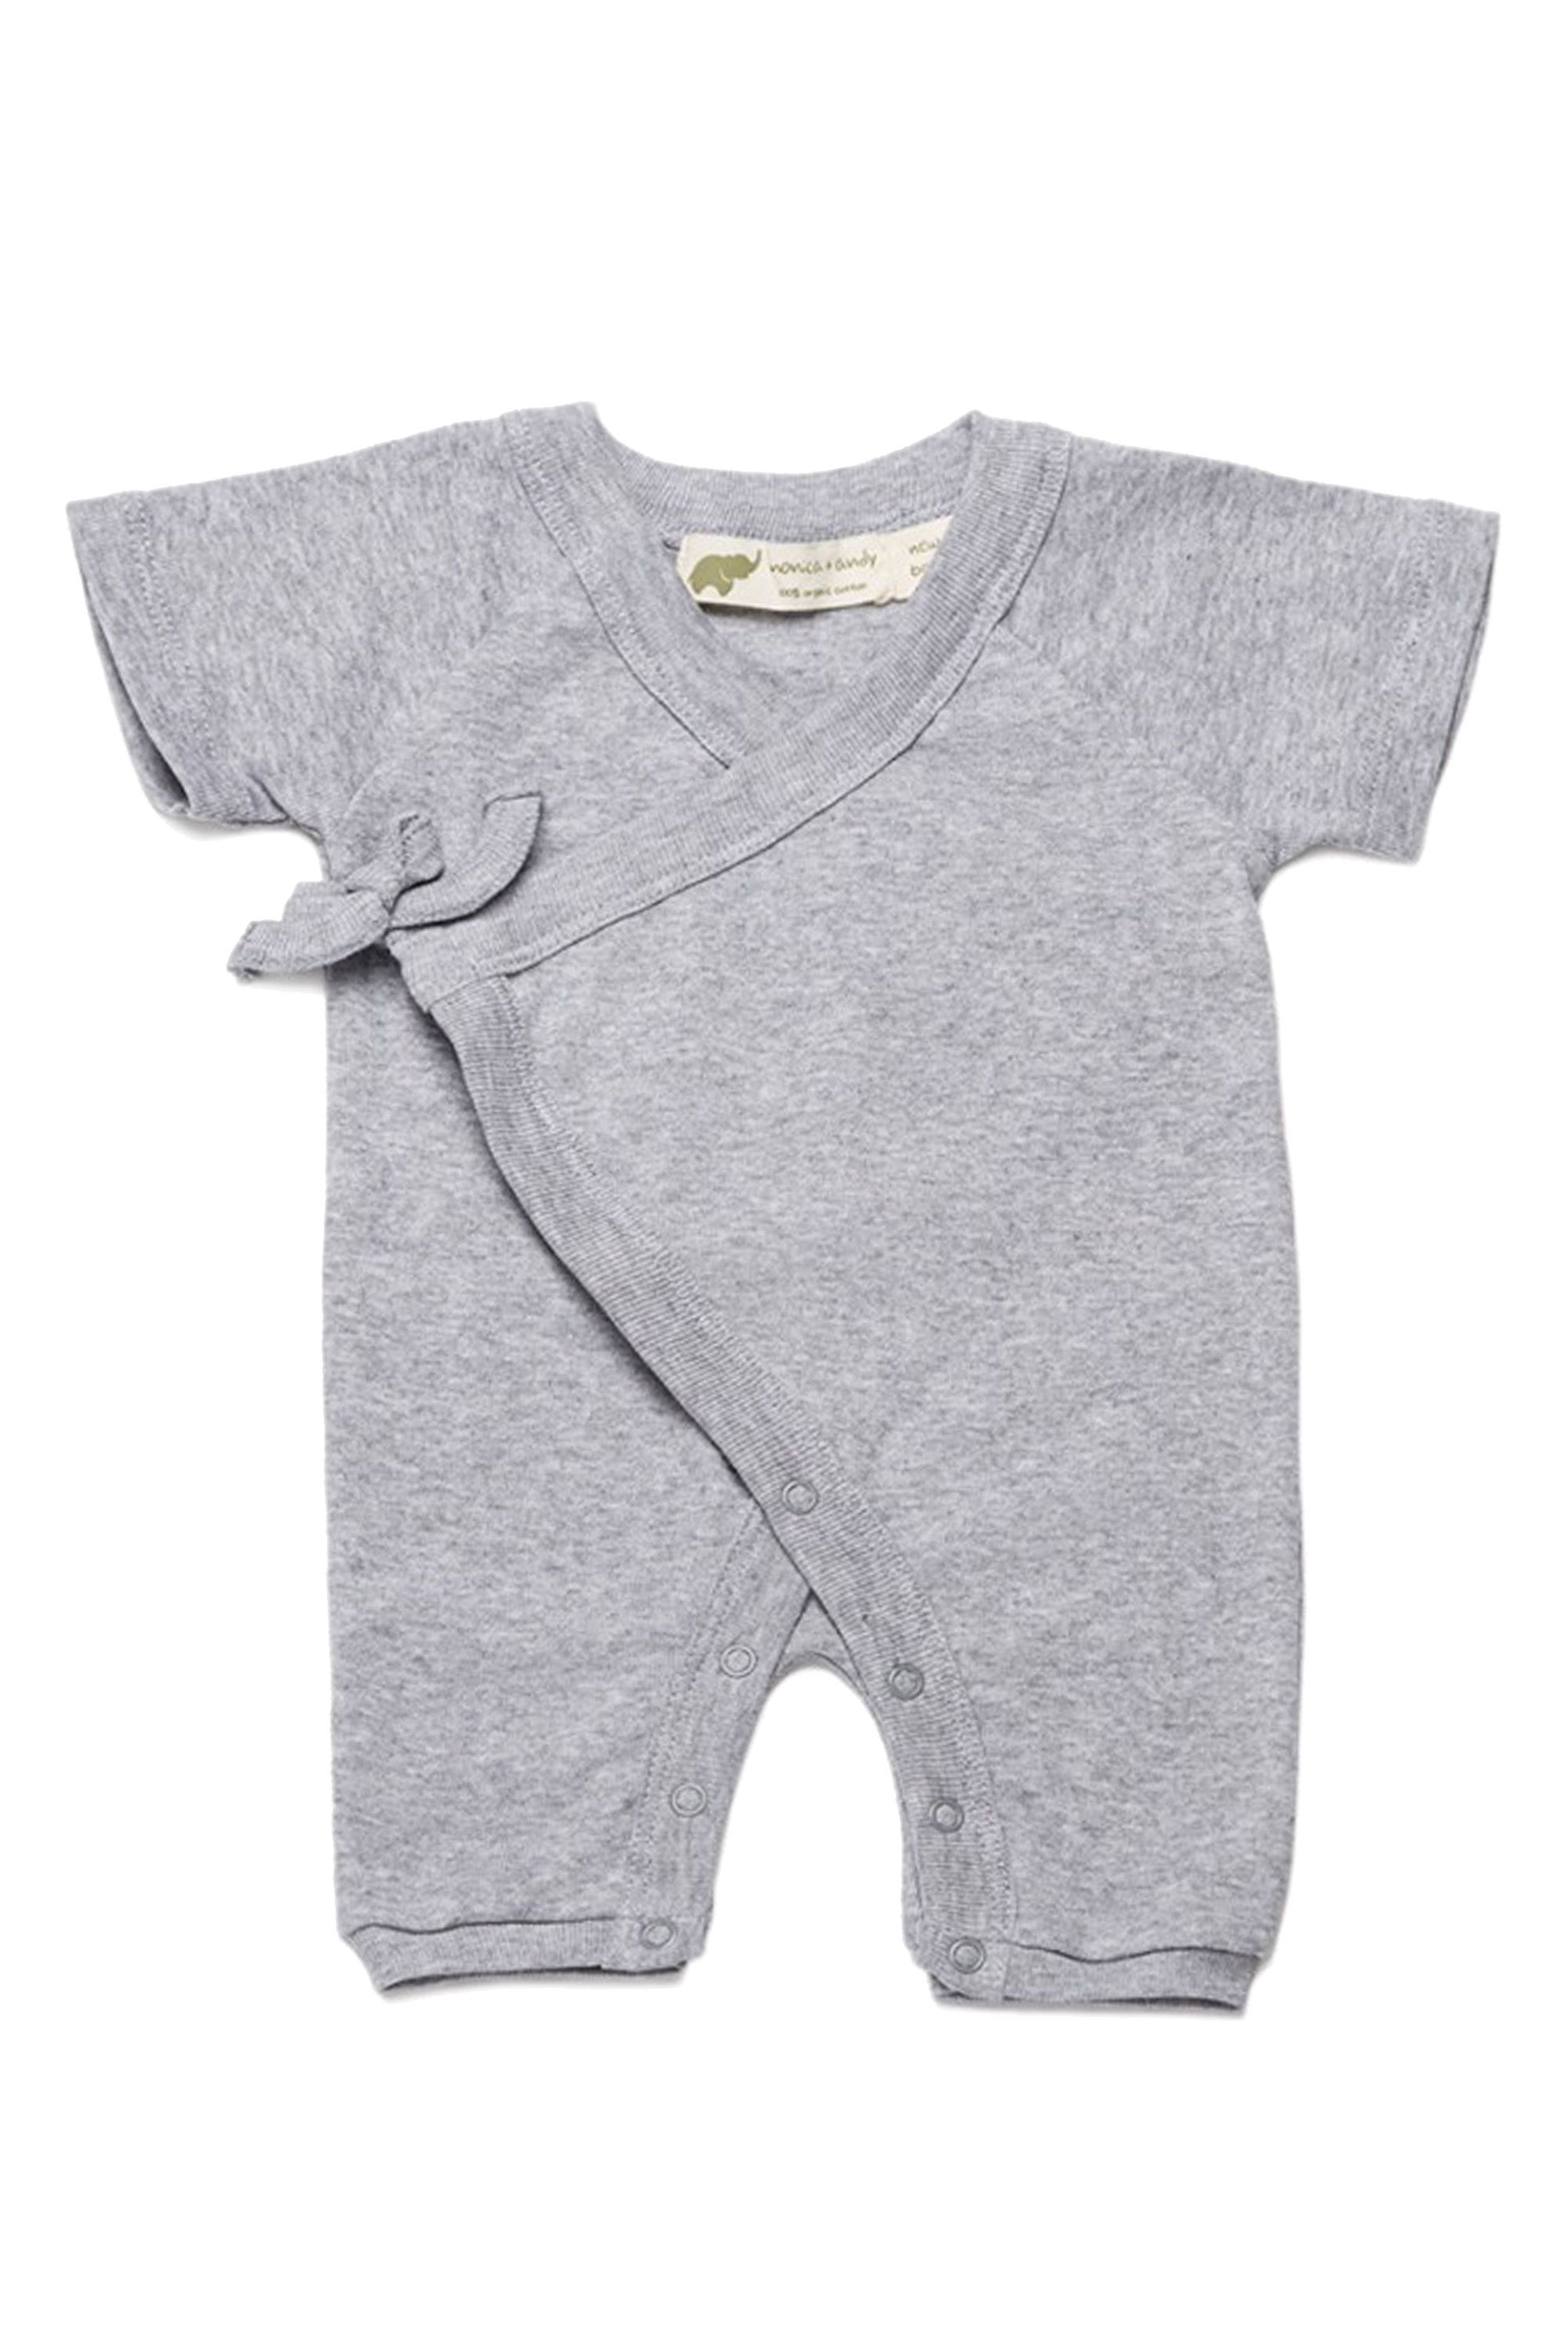 d6150e0f756e 25 Designer Baby Clothes That Are Too Adorable to Exist - 25 Designer Baby  Gifts For All The Moms-to-Be